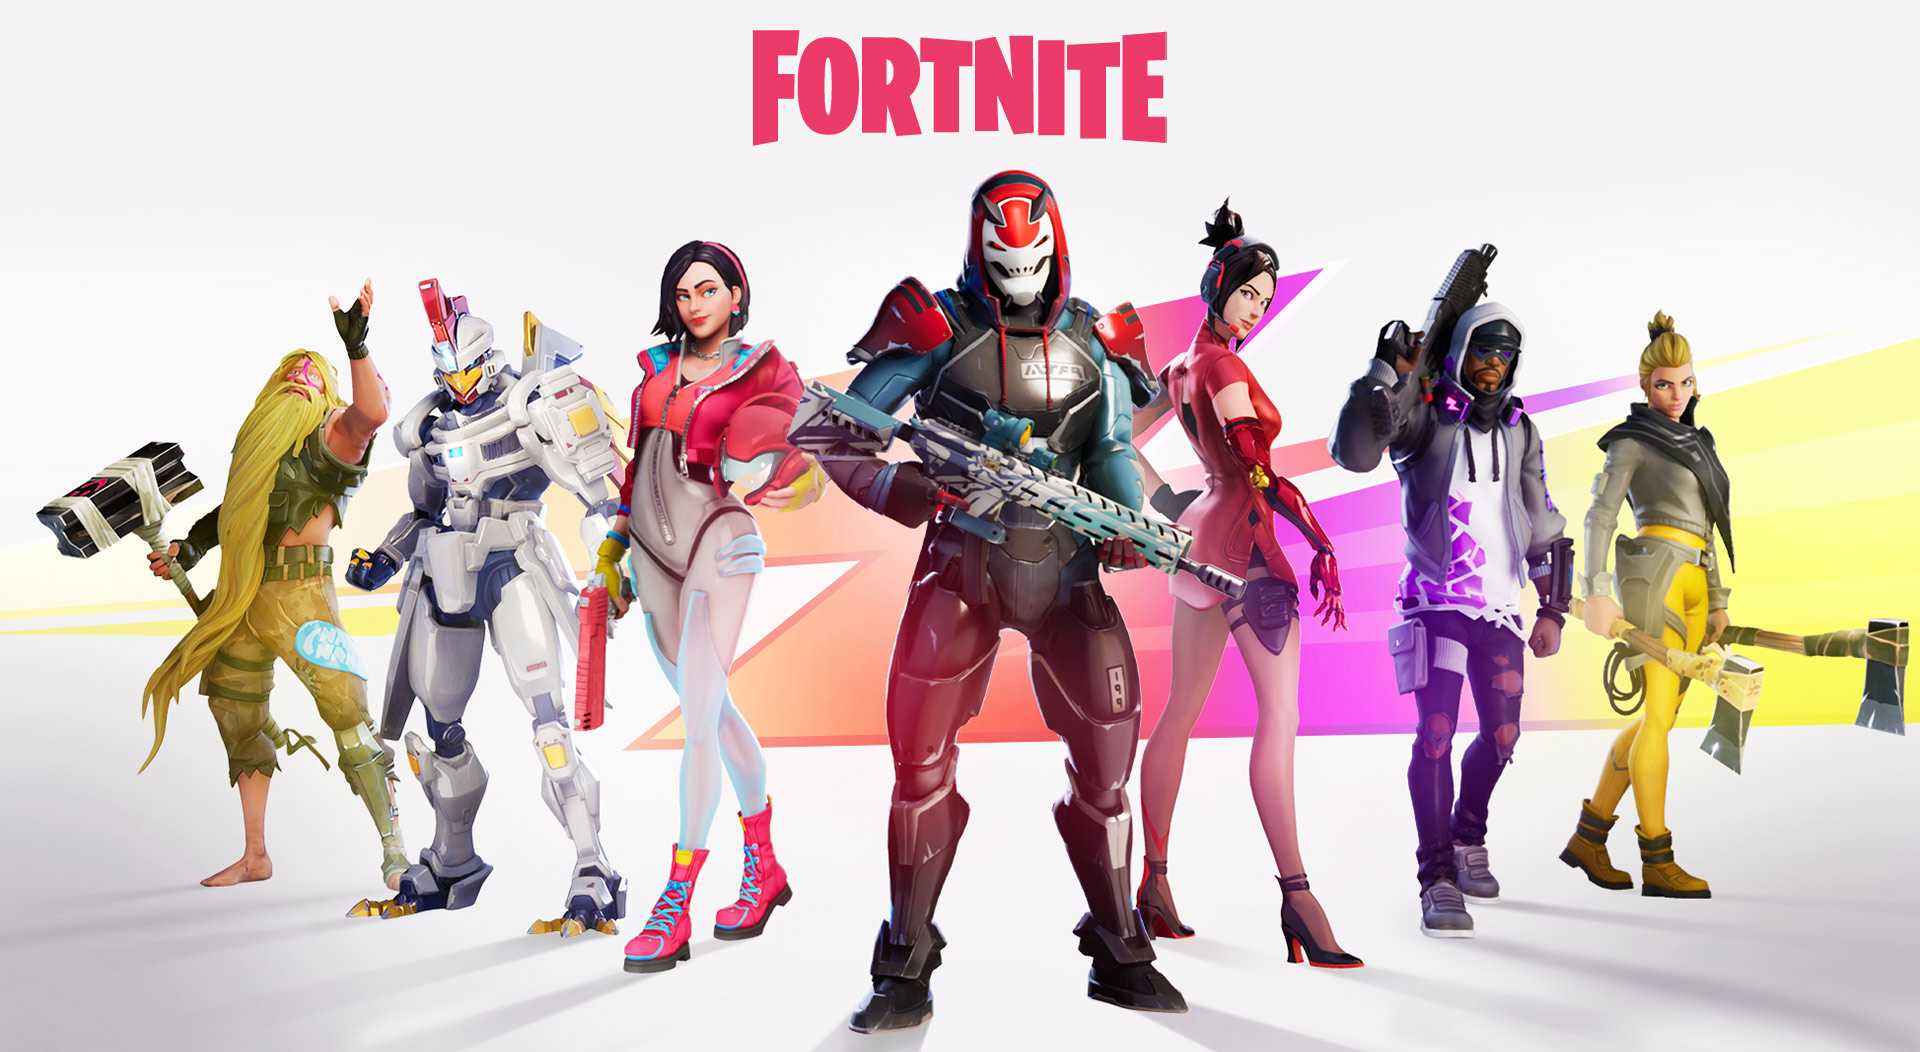 Diversas personagens do Fortnite dispostas em V